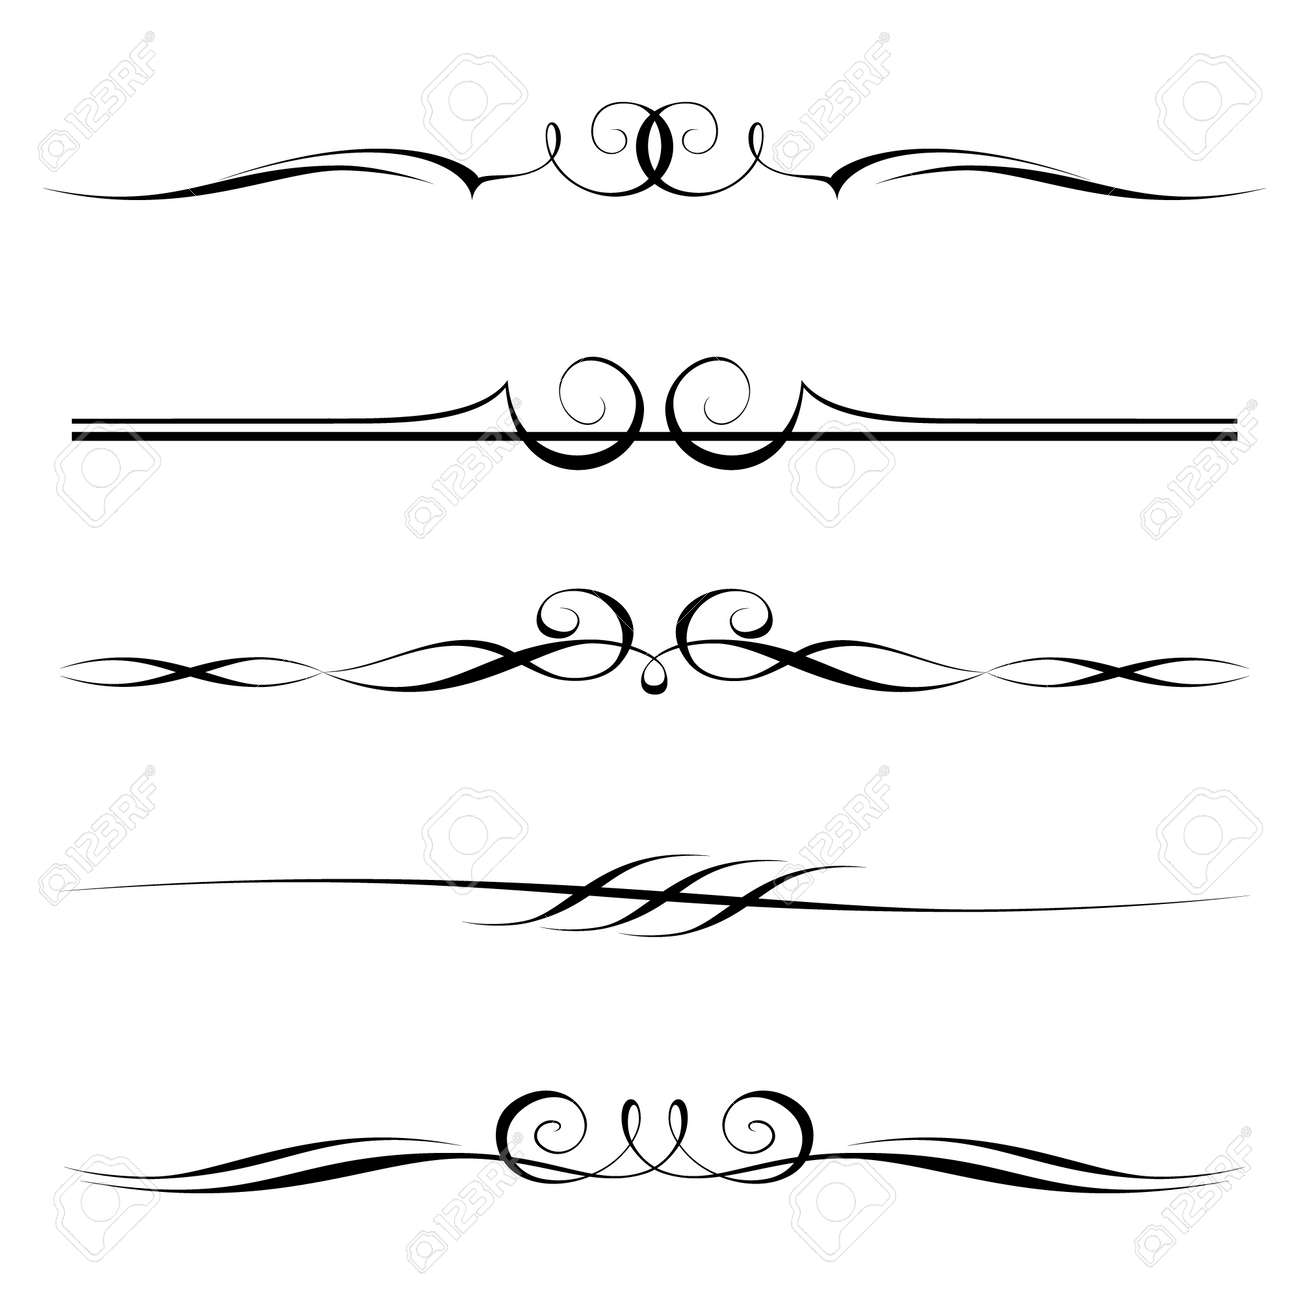 set of decorative elements, border and page rules frame Stock Vector - 12494733